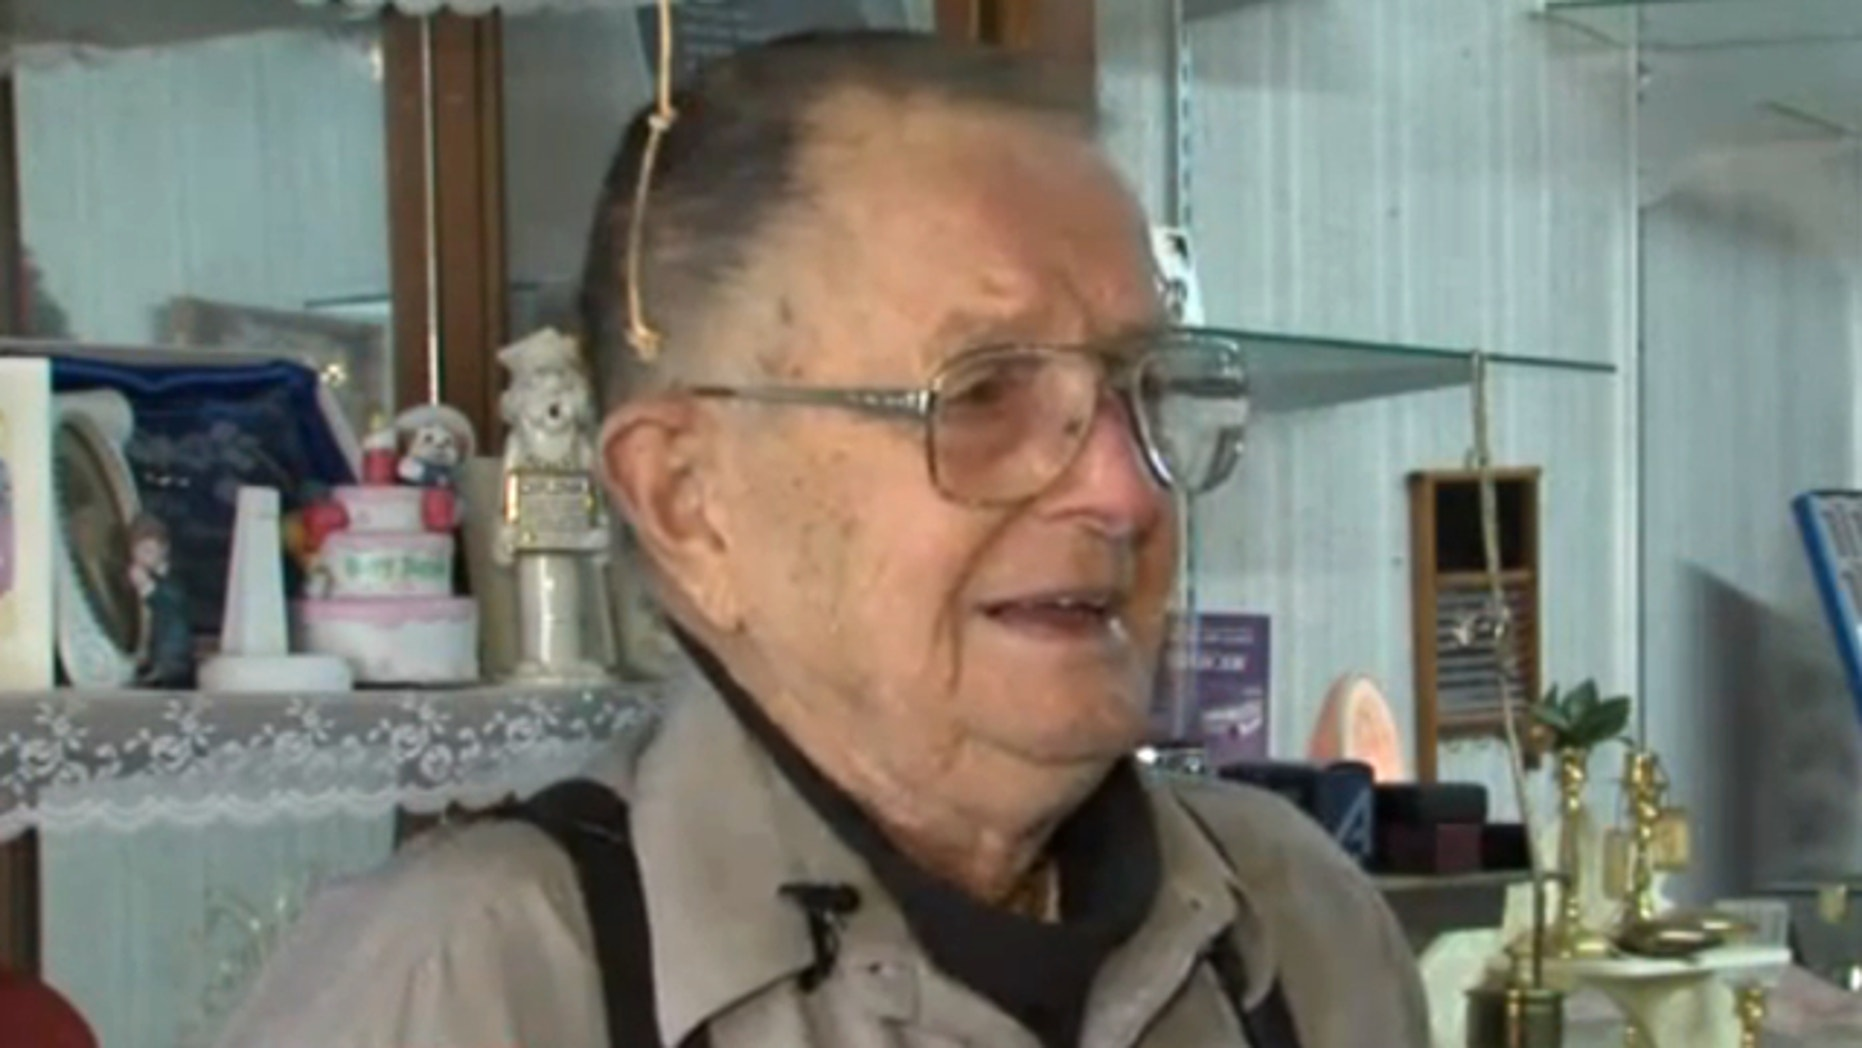 Kenneth Knudson, an 88-year-old World War II veteran, says he was fined and jailed for one night after he failed to produce a plan to fix his office building in downtown Horton, Kan.